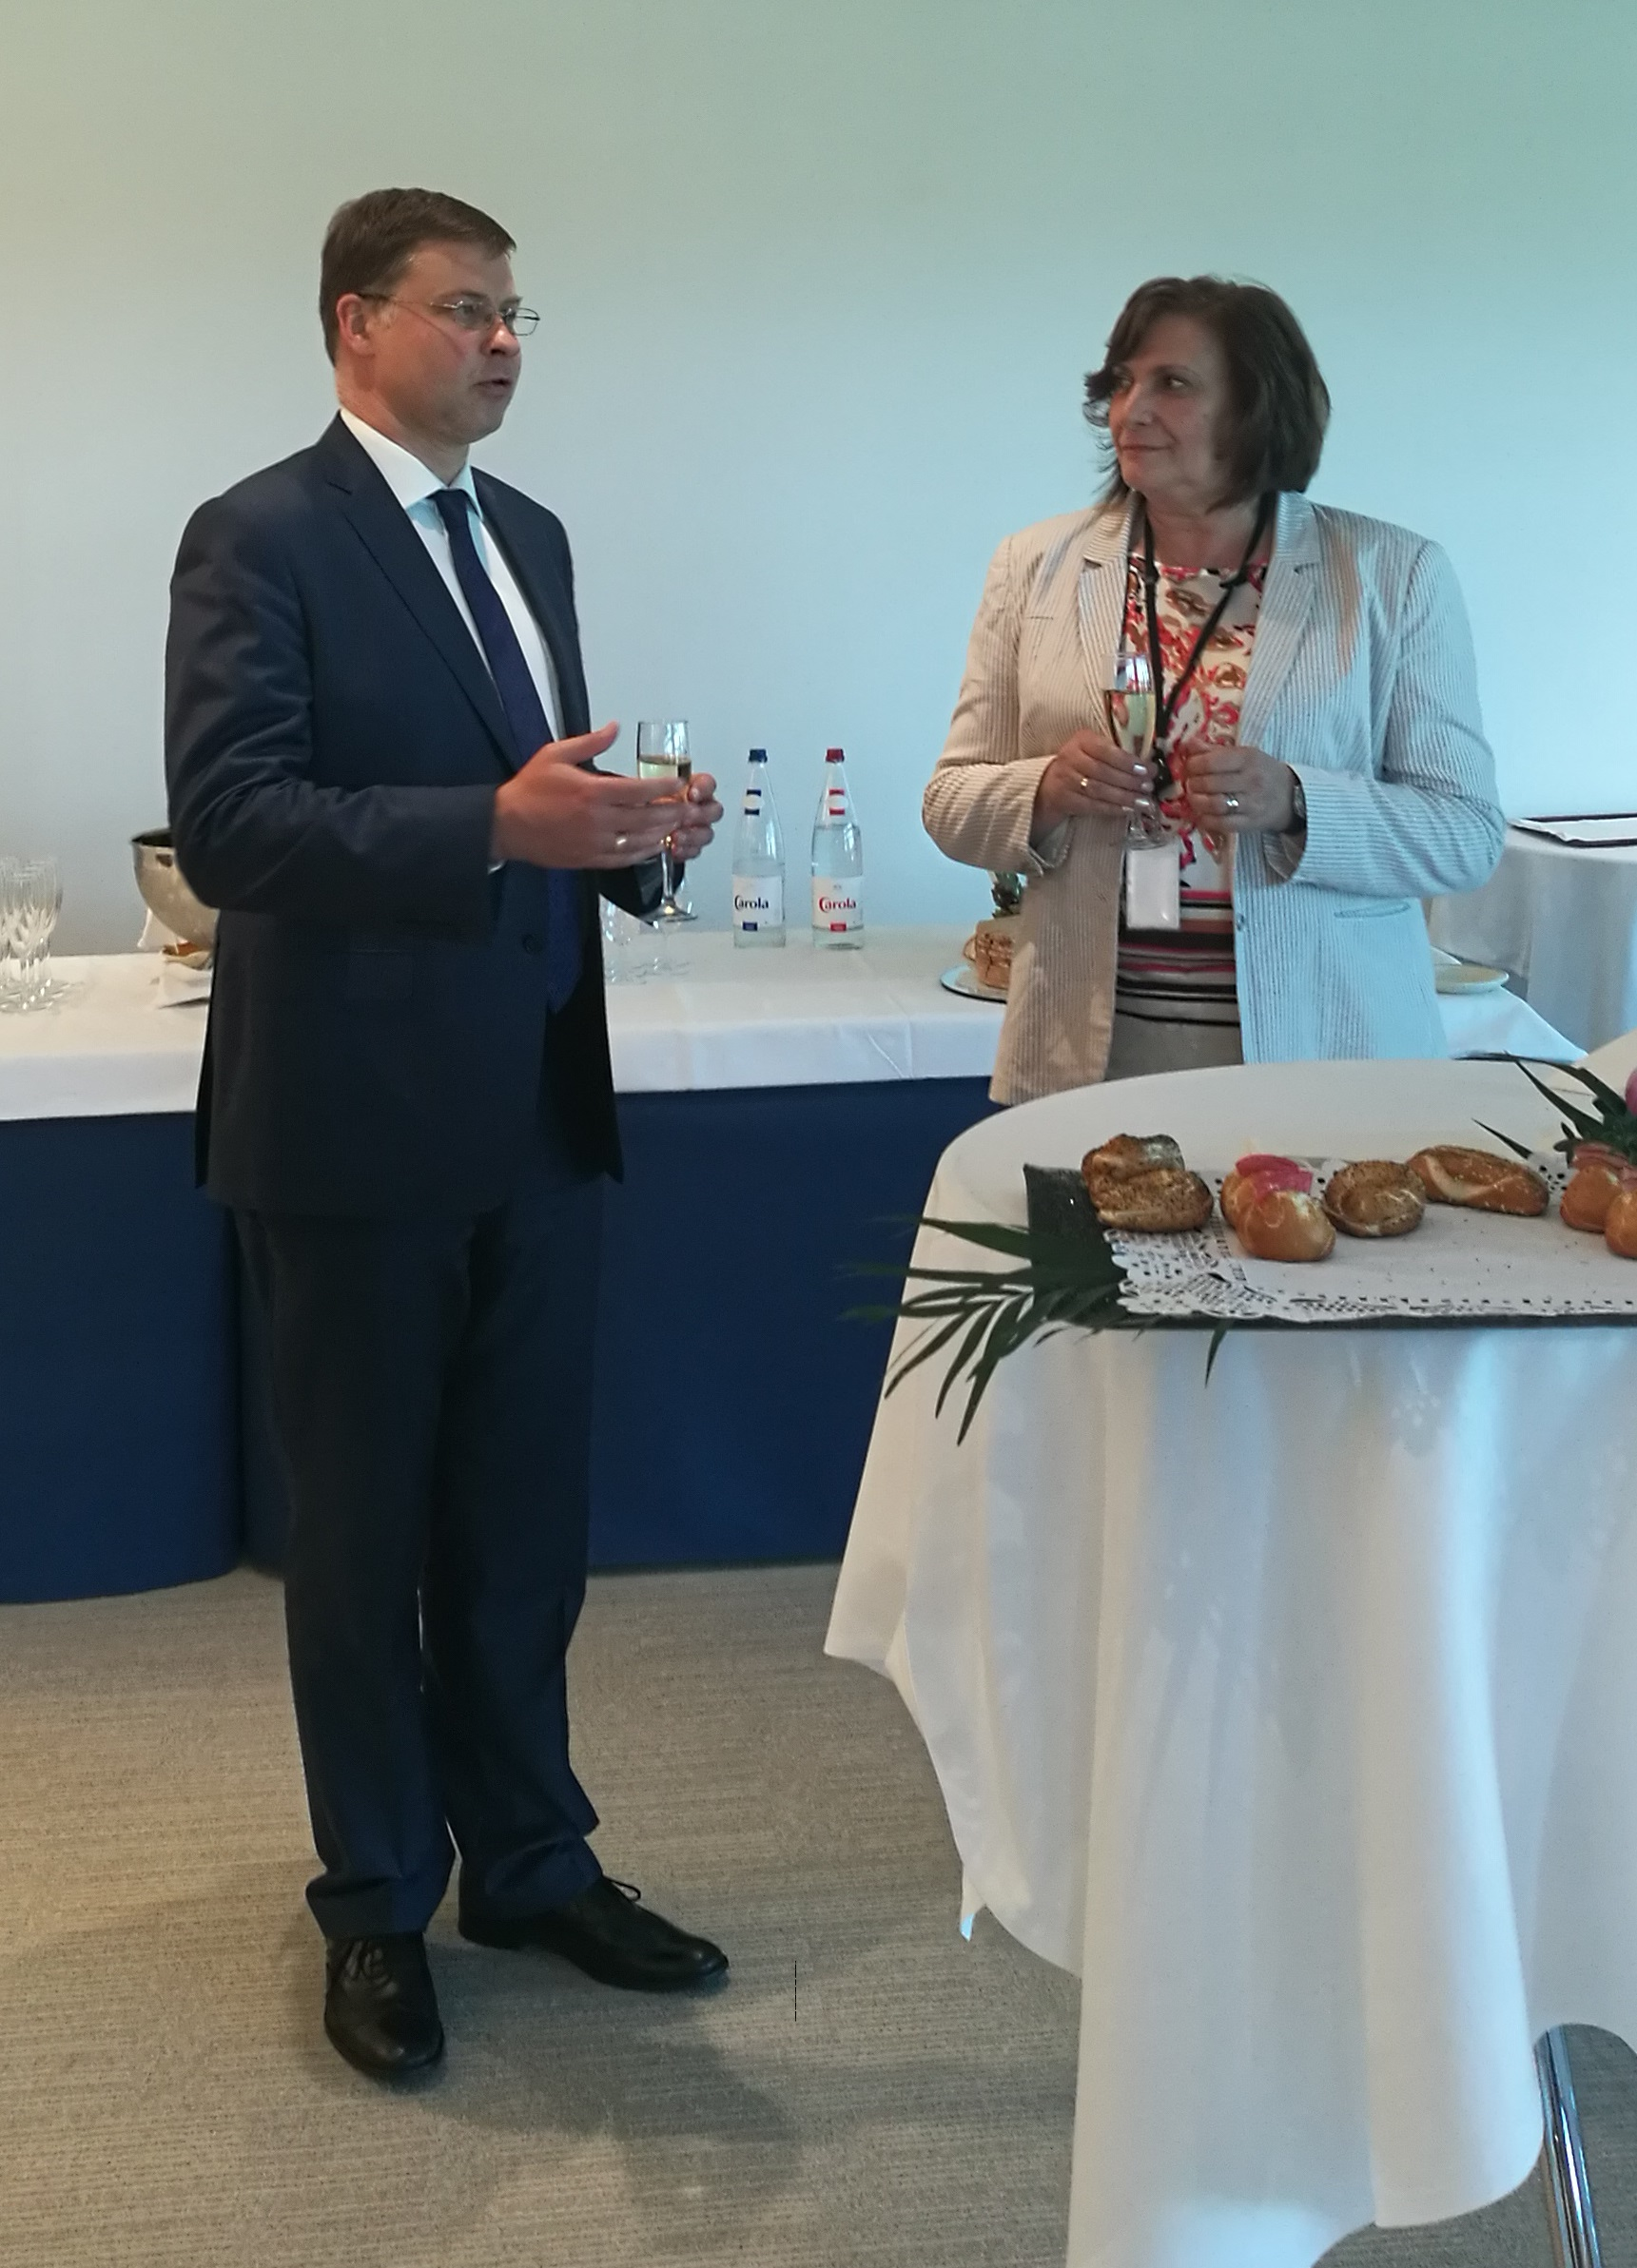 Photo - SRSP celebration - Ms Mihaylova and Mr Dombrovskis